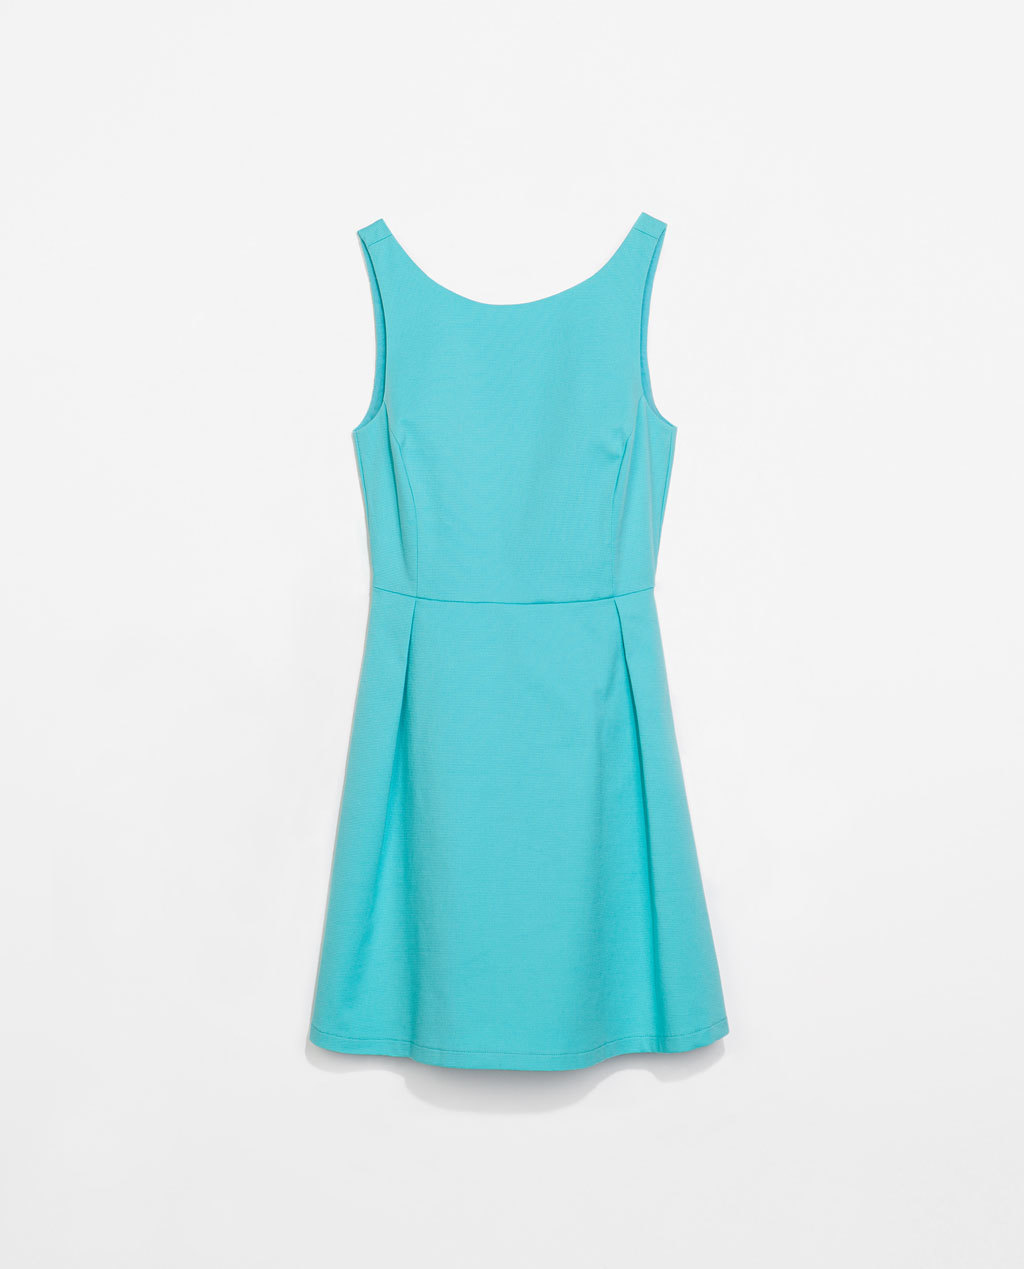 Pleated Dress - length: mid thigh; neckline: round neck; pattern: plain; sleeve style: sleeveless; back detail: back revealing; predominant colour: turquoise; occasions: casual, holiday, creative work; fit: fitted at waist & bust; style: fit & flare; fibres: cotton - stretch; hip detail: adds bulk at the hips; sleeve length: sleeveless; pattern type: fabric; texture group: other - light to midweight; trends: hot brights; season: s/s 2014